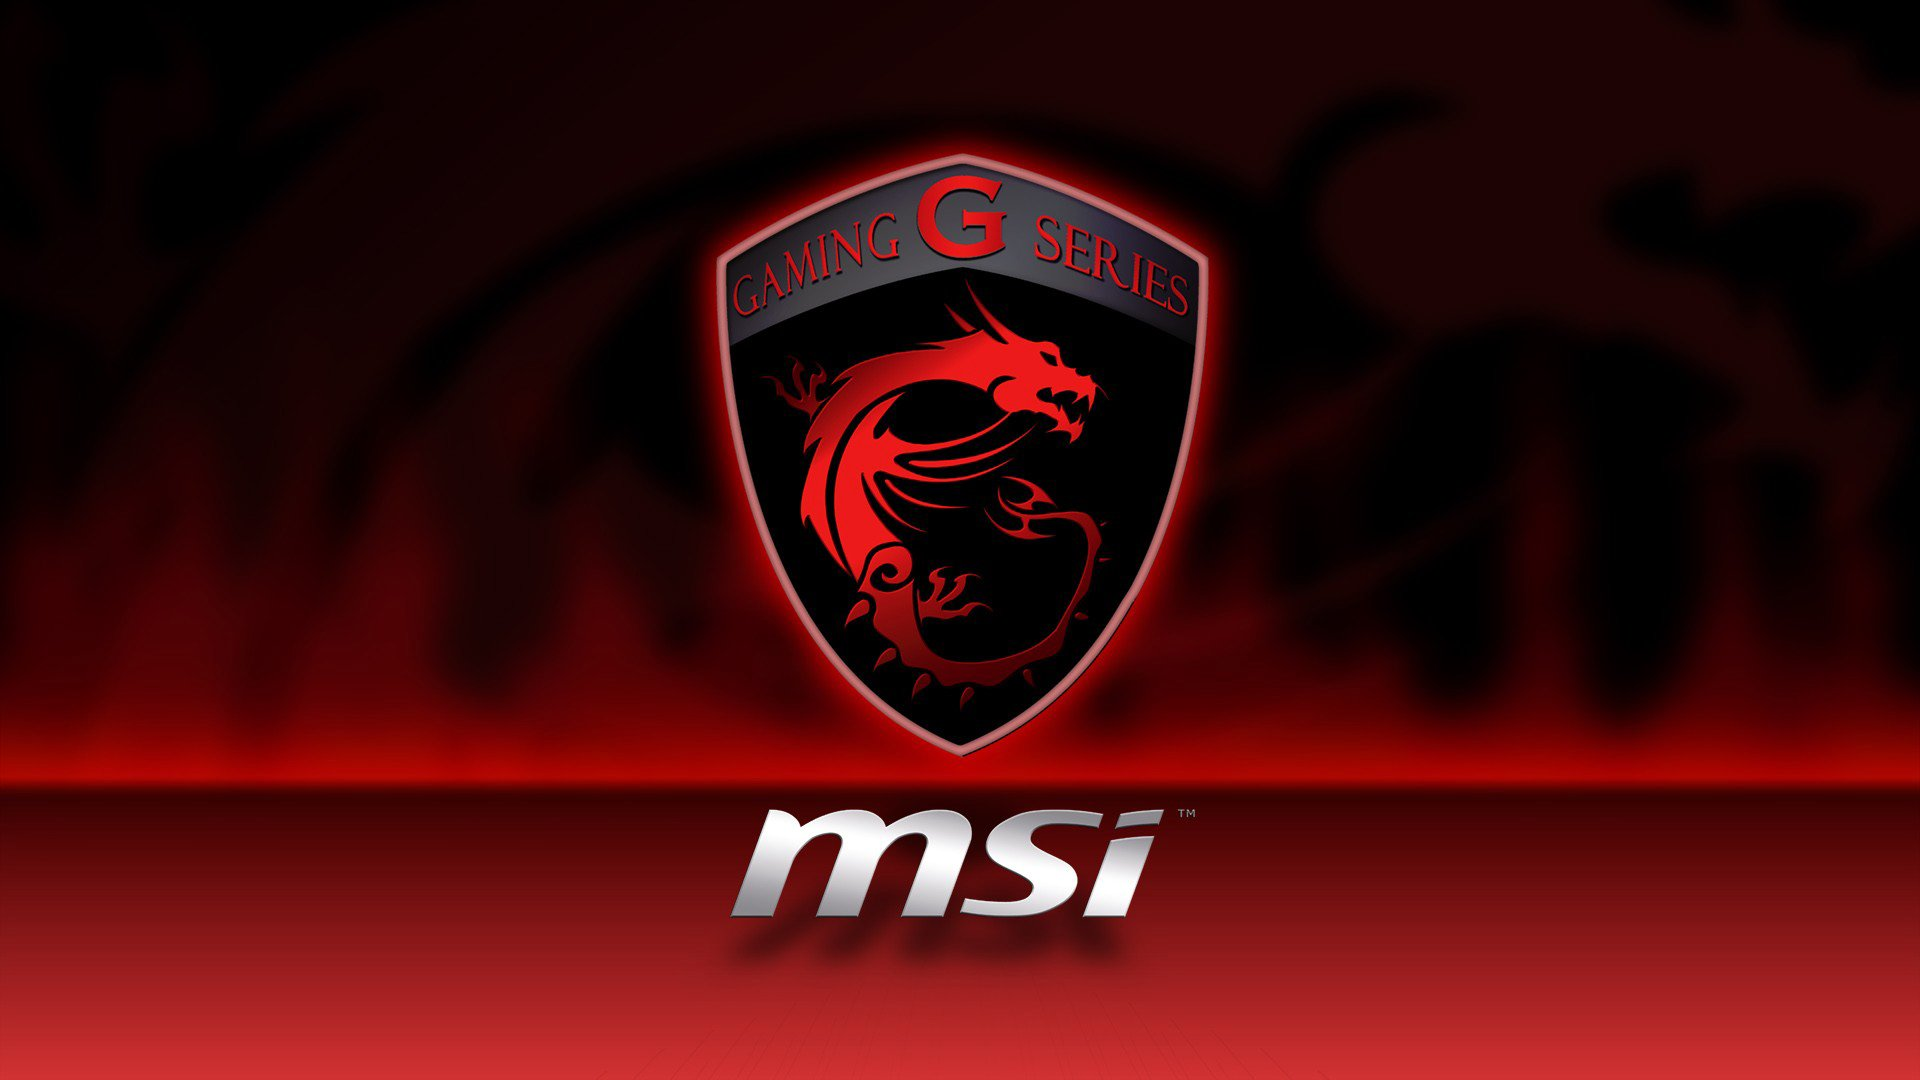 Msi full hd wallpaper and background image 1920x1080 id756290 technology msi computer wallpaper voltagebd Images